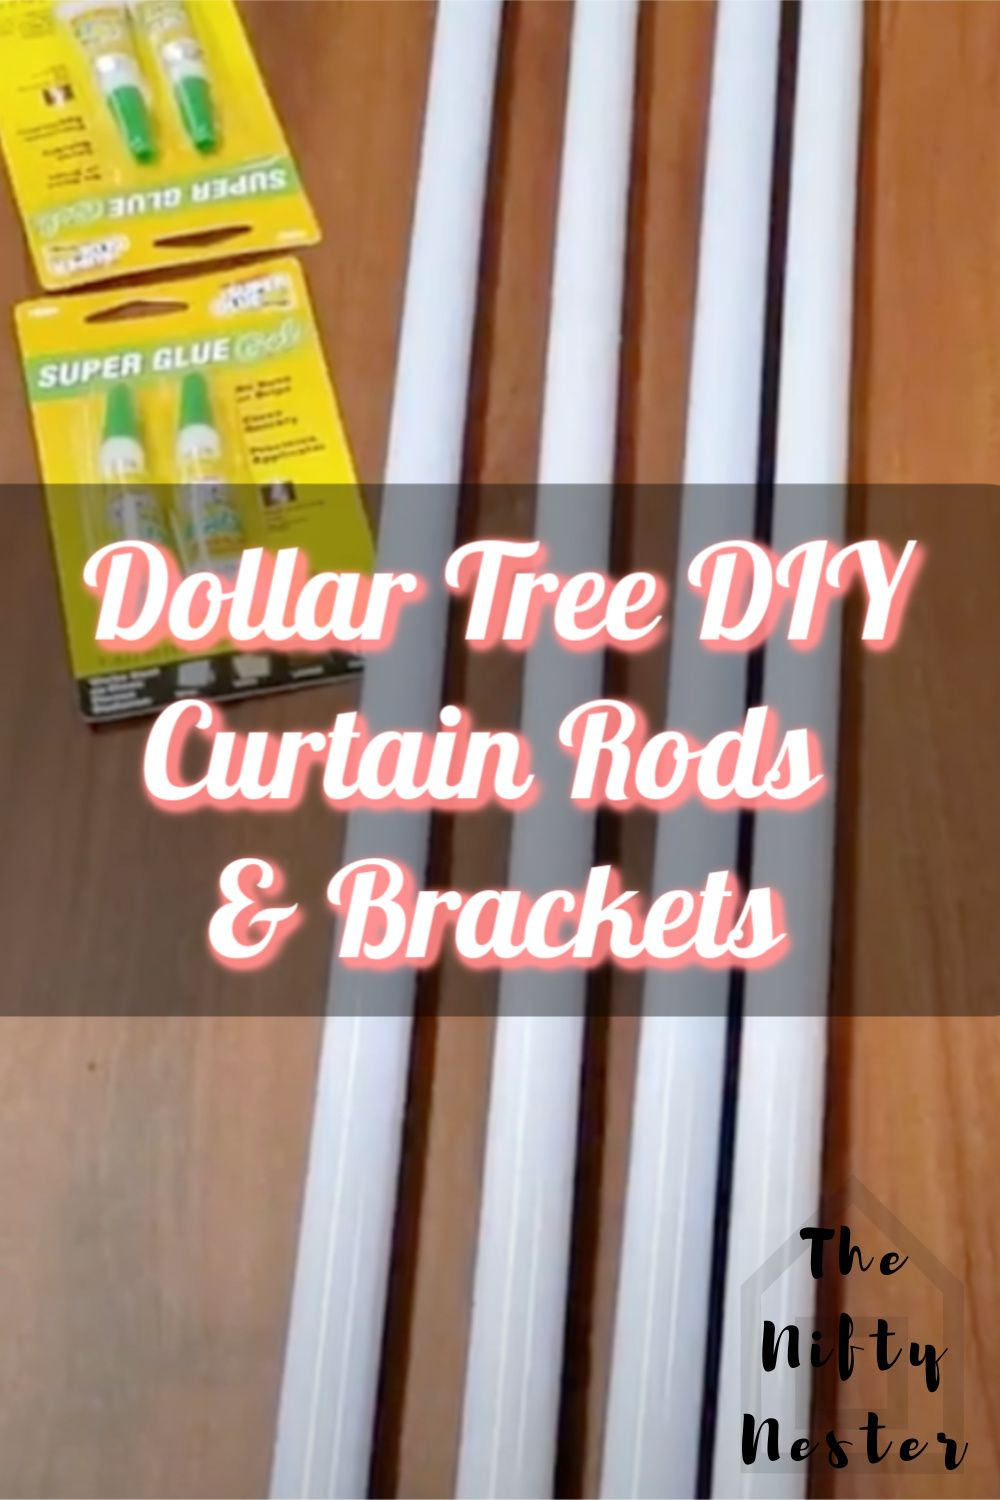 I made these DIY Dollar Tree curtain rods for my bonus daughter's dorm room makeover. I needed a cheap option for these over sized windows that would be dorm room and renter friendly. These are a no-drill option that is easy to make and easy to remove. This DIY Dollar Tree decor project only cost me $4 per window, and they are over 90